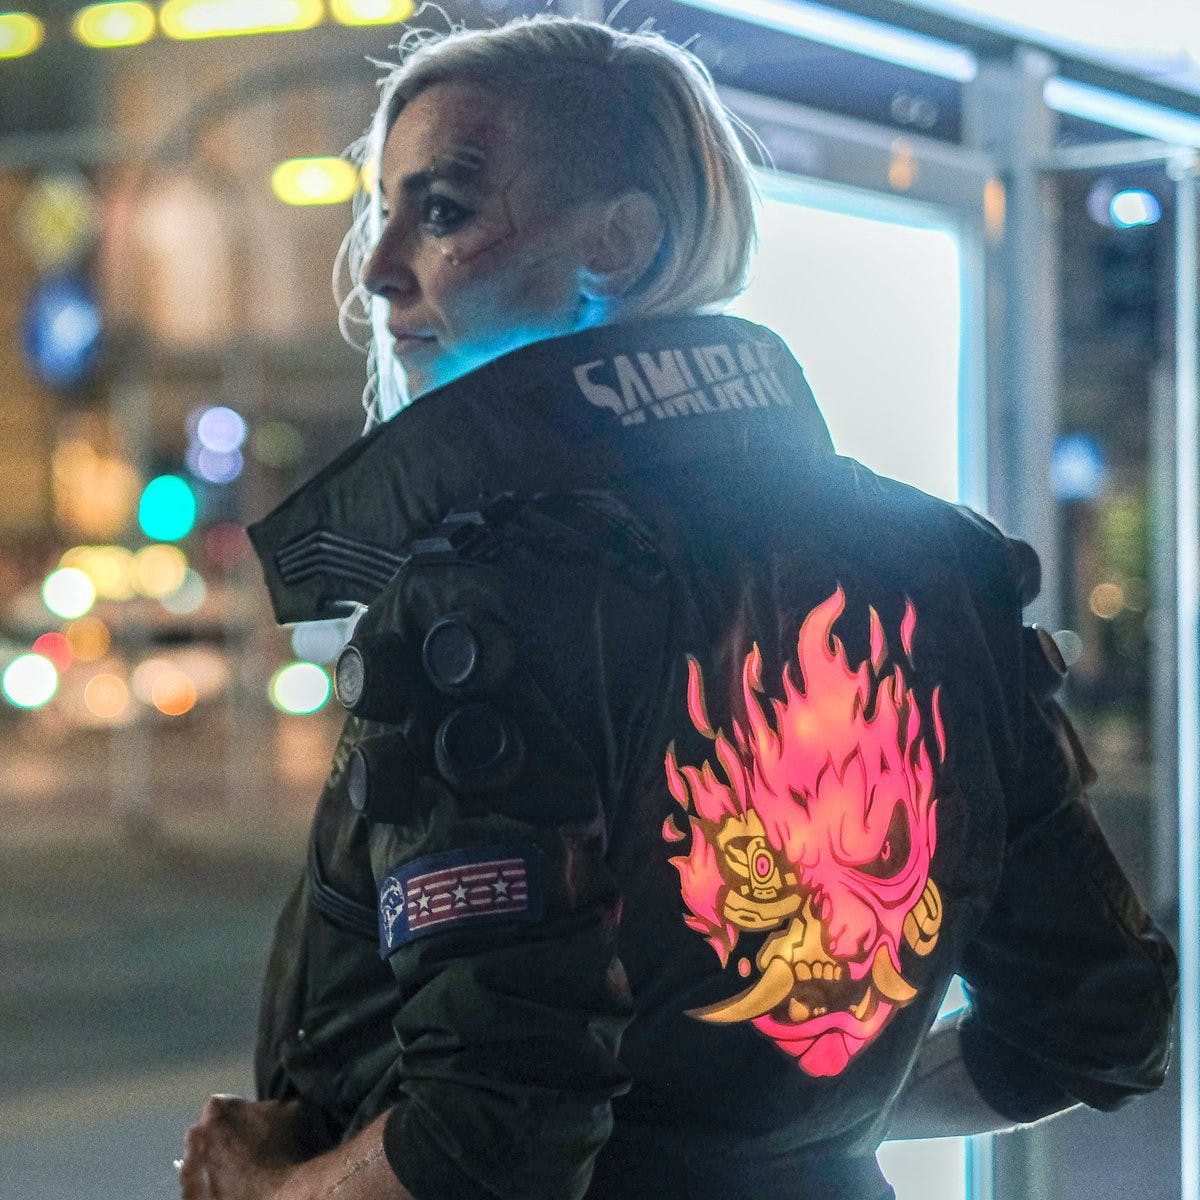 Cyberpunk 2077 Patches for Jacket